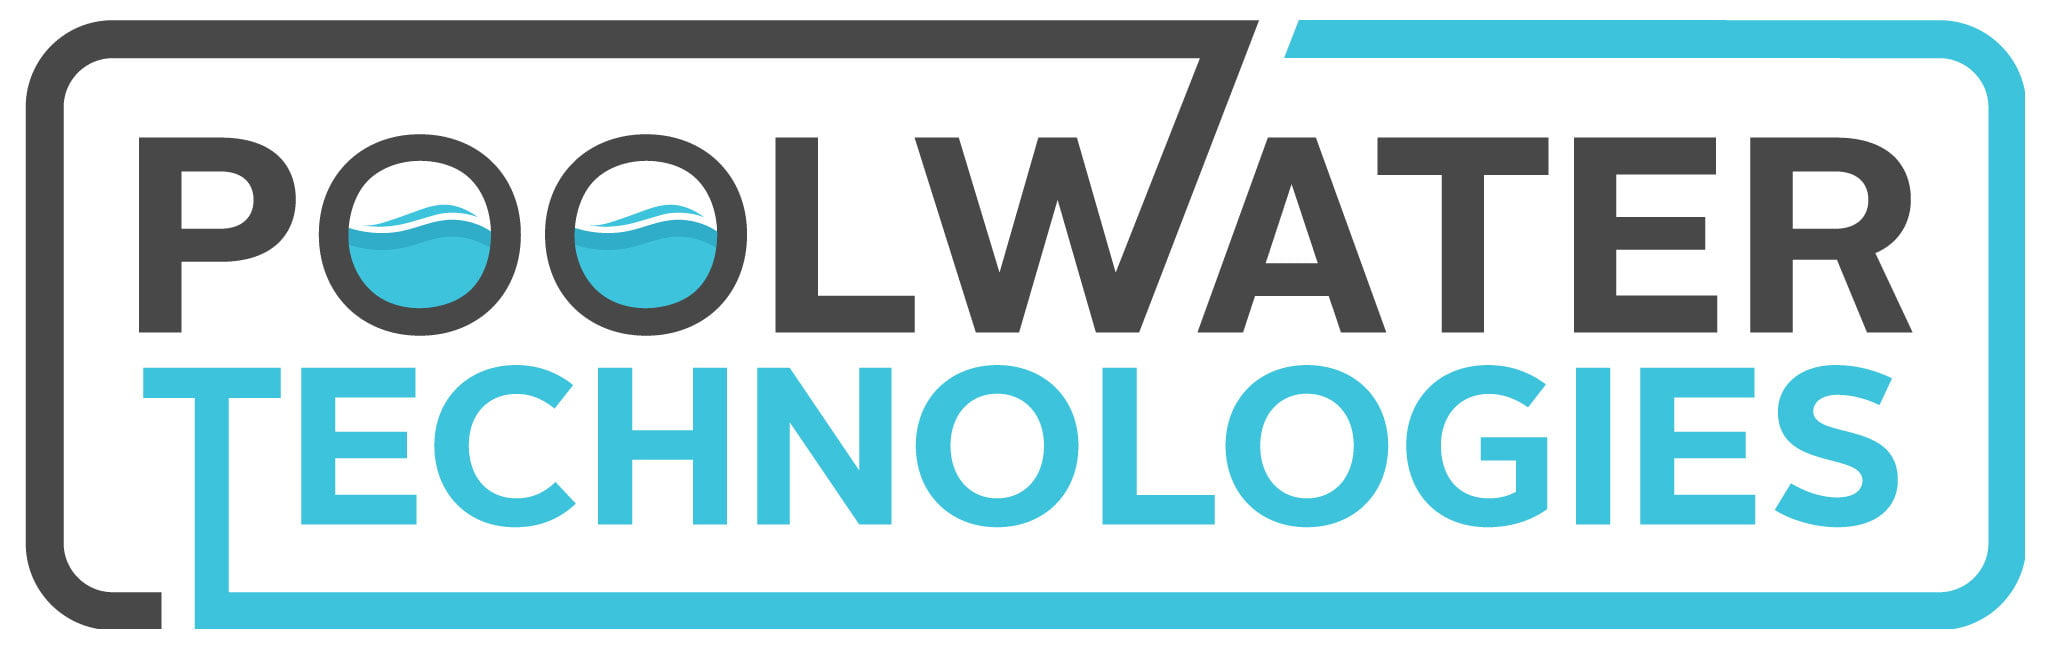 Poolwater Technologies